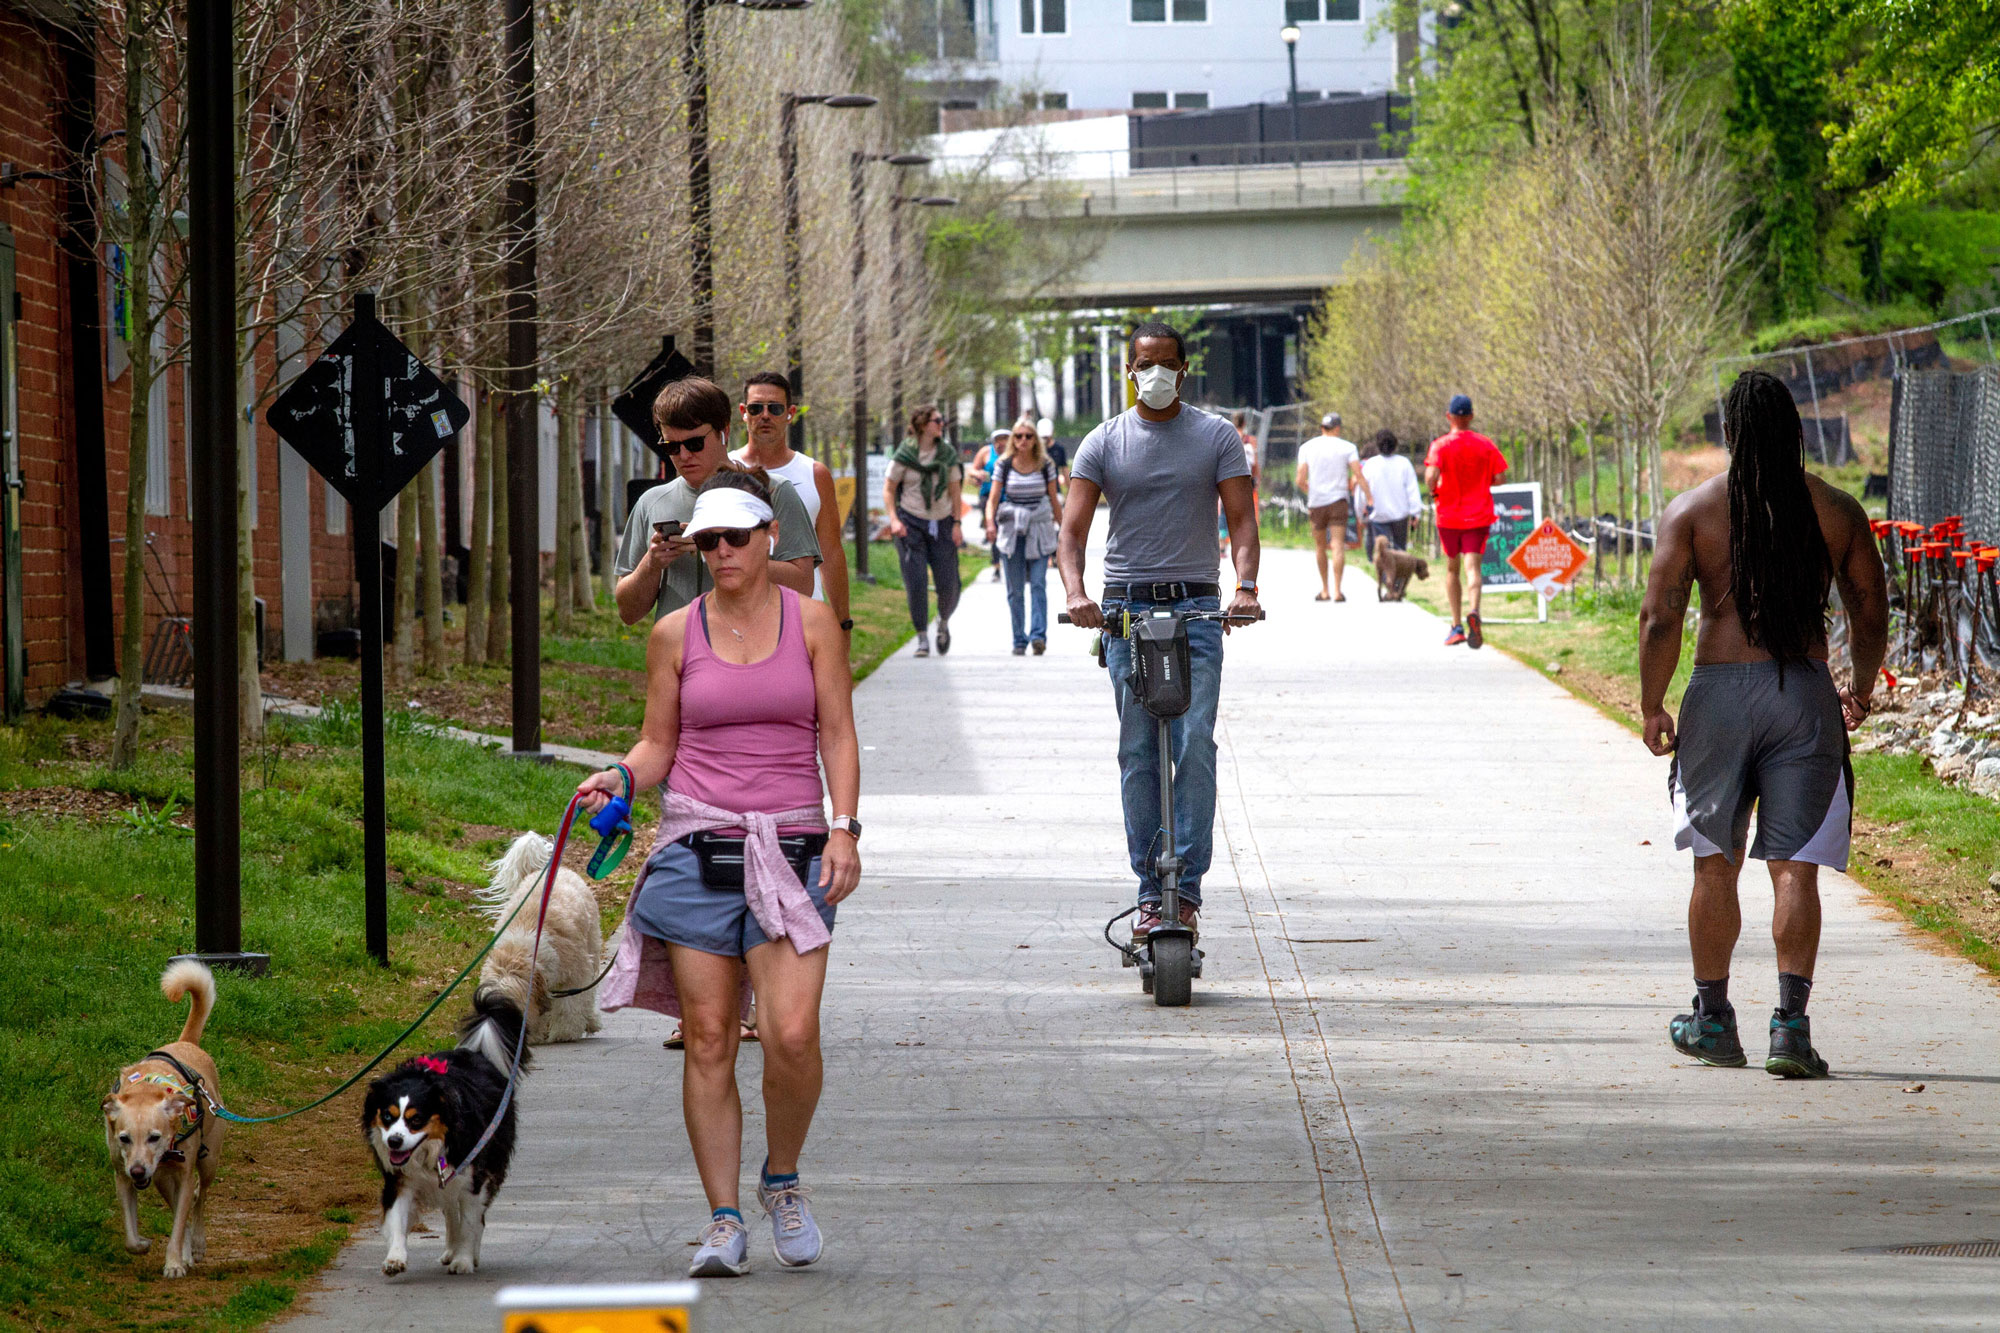 Marcus Bouliany, center, wears a mask while making his way along the BeltLine in Atlanta, during the coronavirus outbreak Saturday, April 4, 2020. (Steve Schaefer/AP)